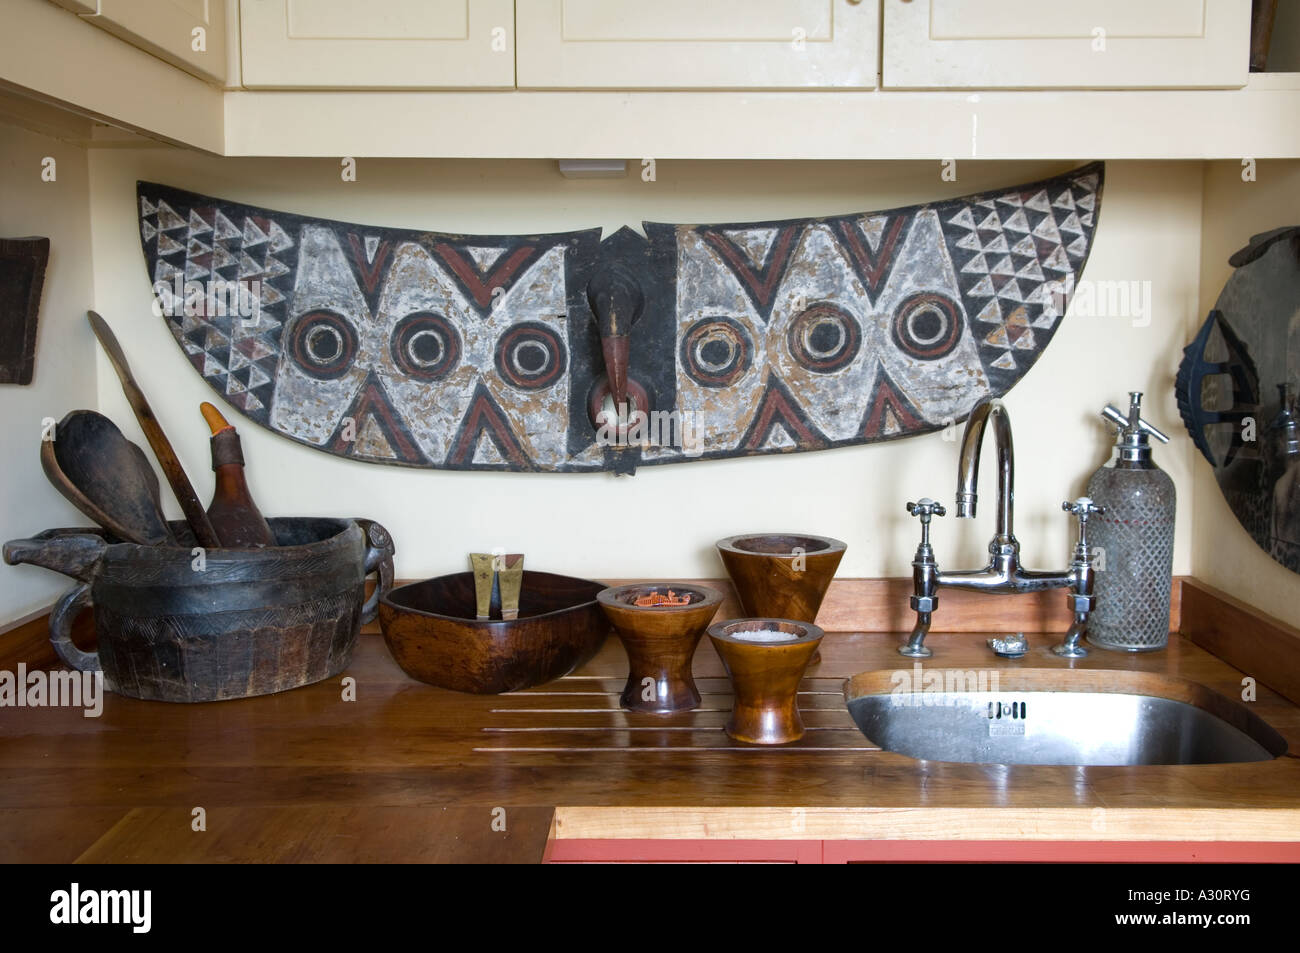 Kitchen sink area with African art Stock Photo: 10632819 - Alamy